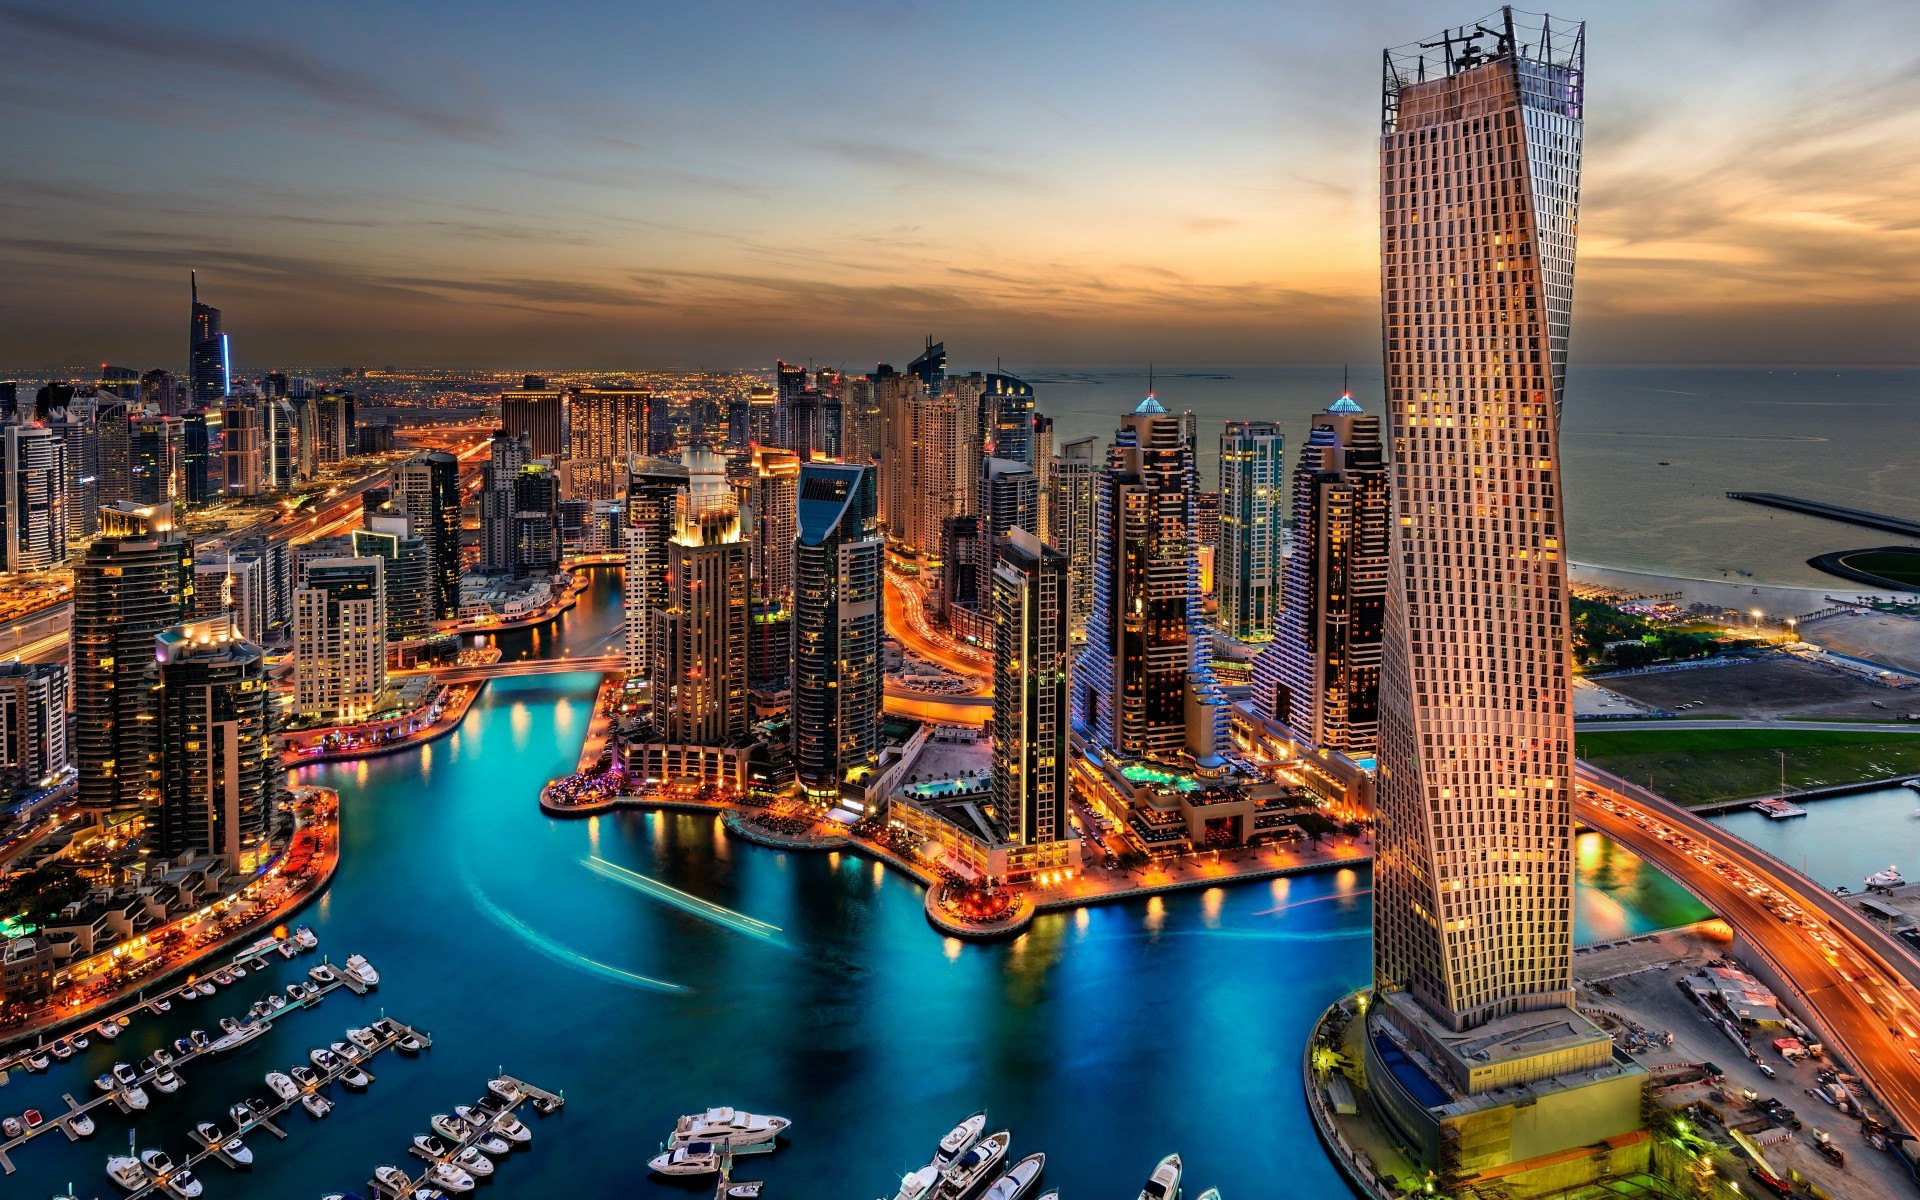 Dubai Skyline Wallpaper for Desktop 1920x1200